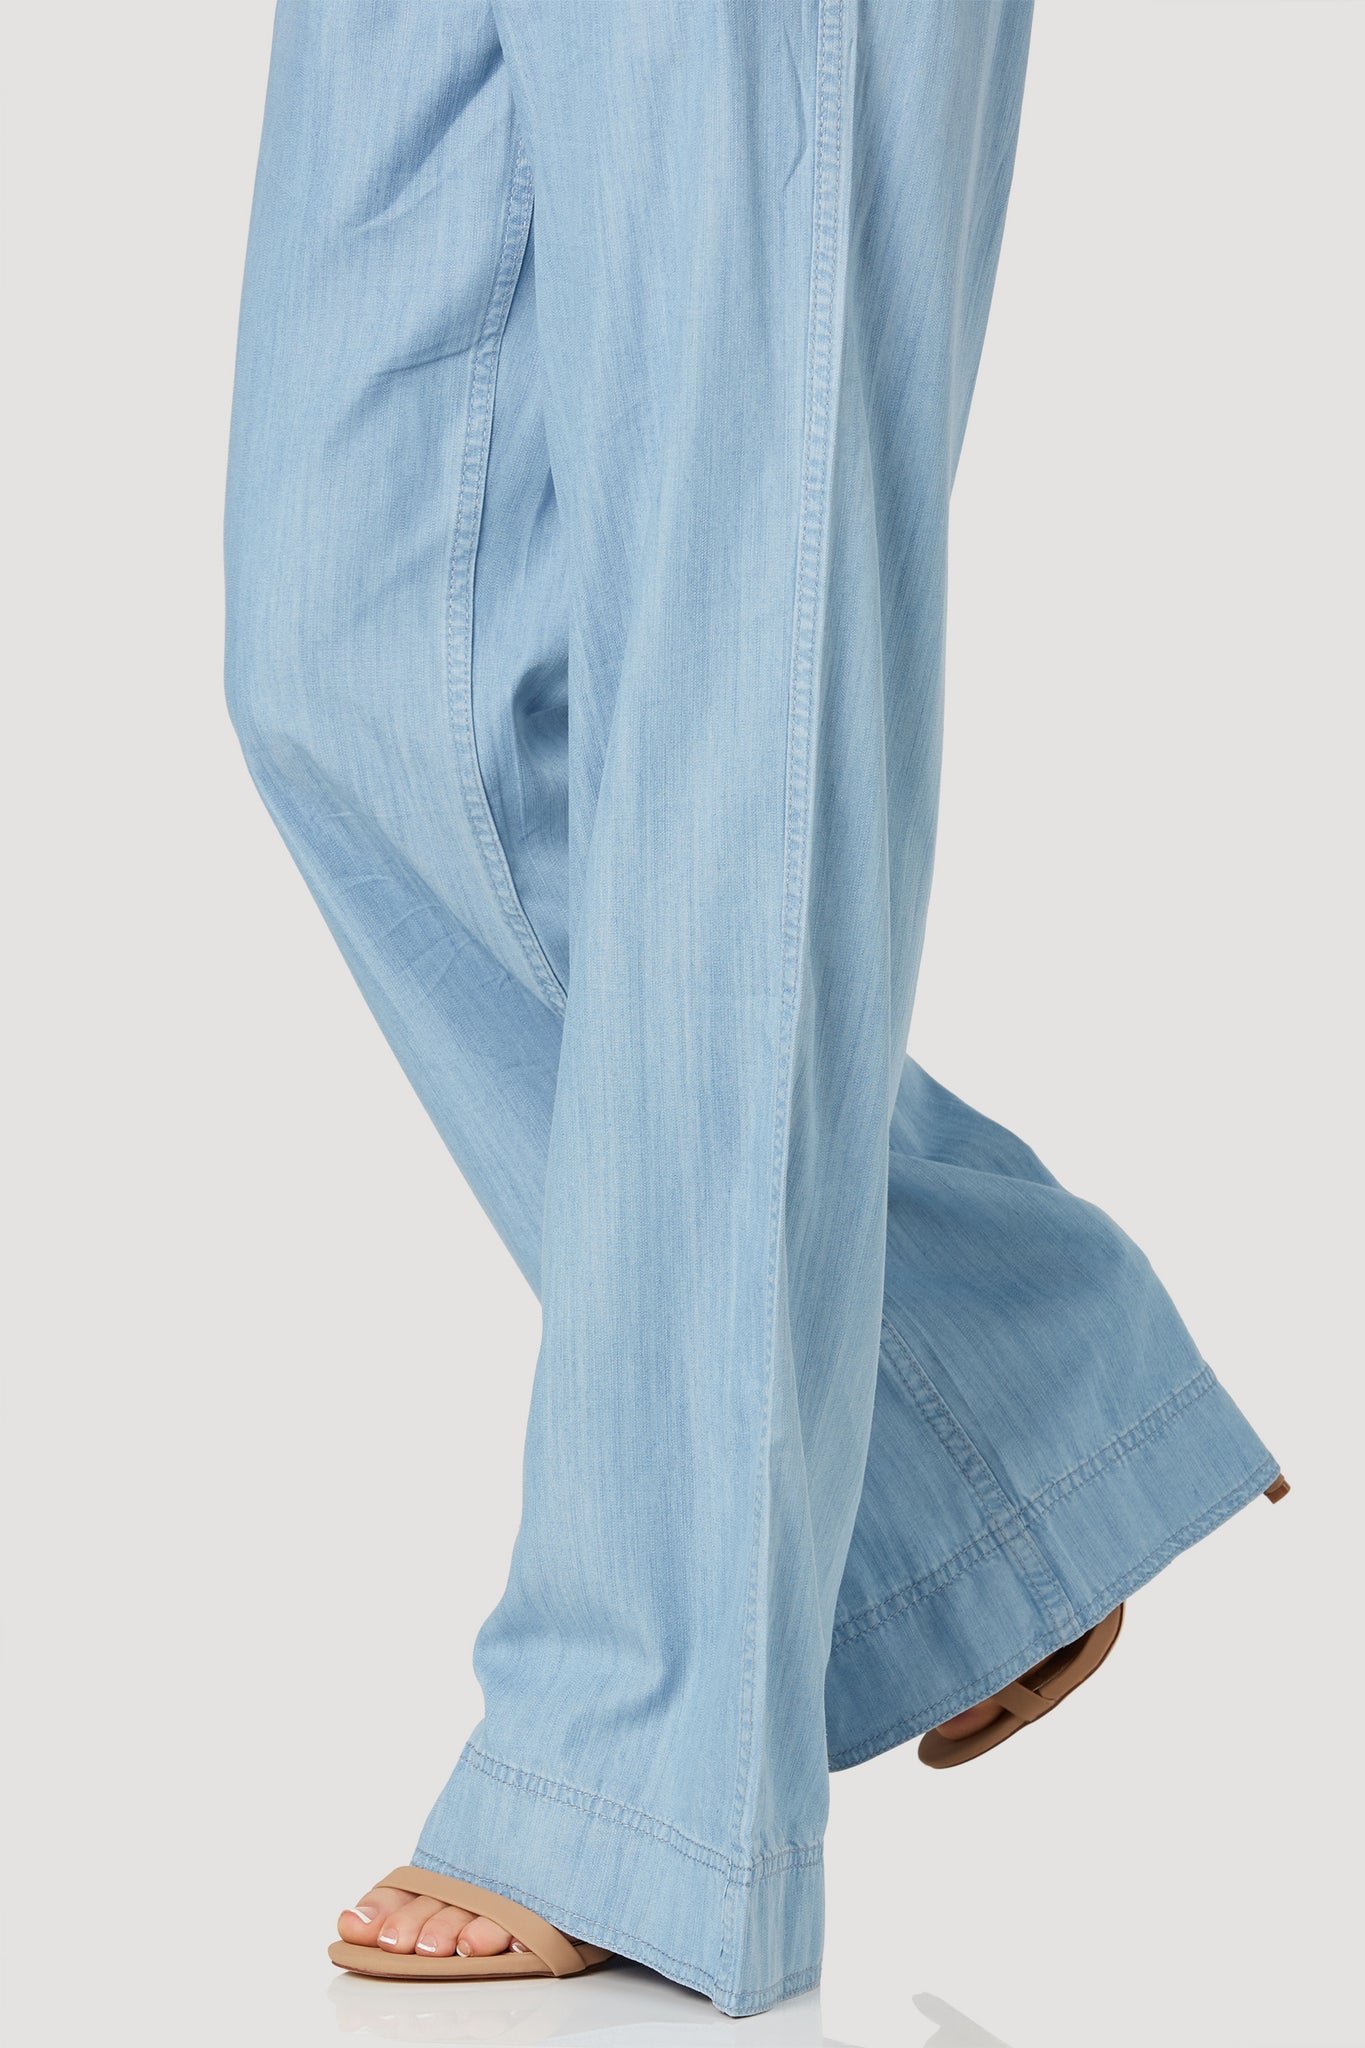 High rise chambray pants with wide leg fit. Side pockets with front zip closure.